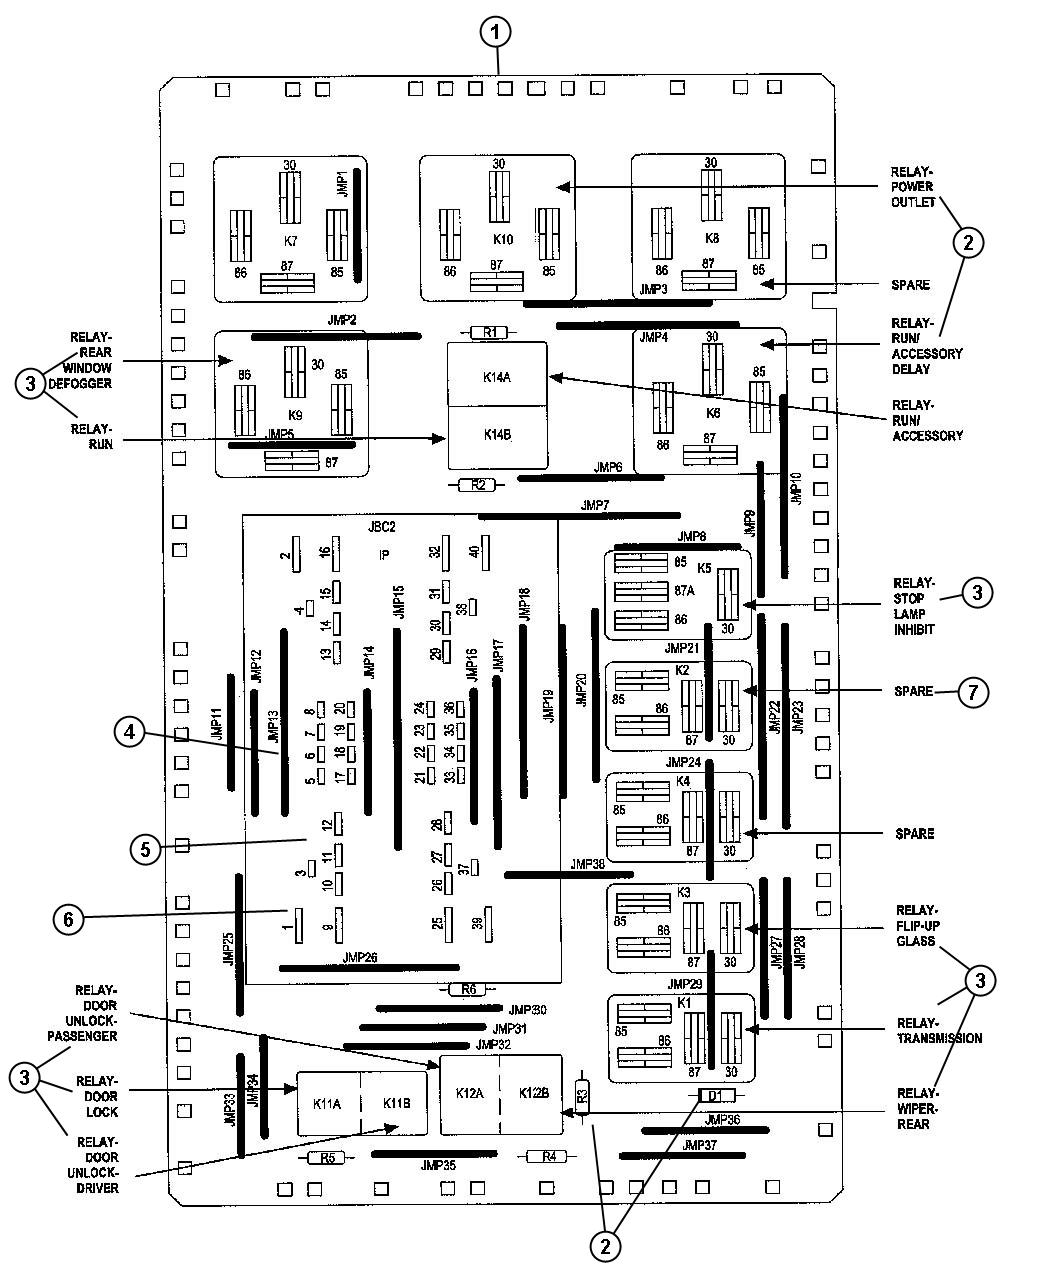 Jeep Commander Junction Block Fuses, Relays, and Circuit